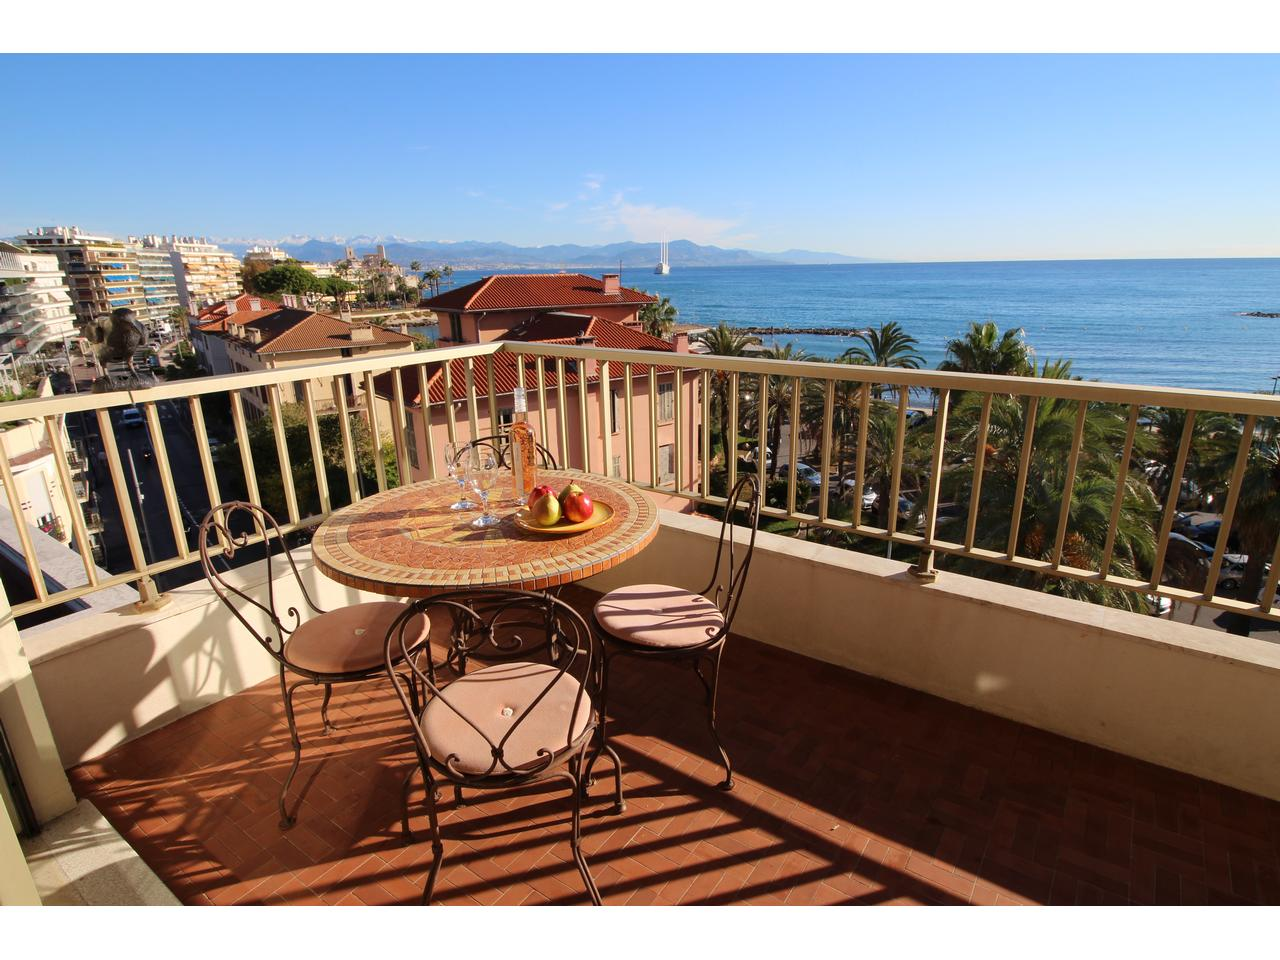 Ilette Antibes appartement face a la mer a vendre